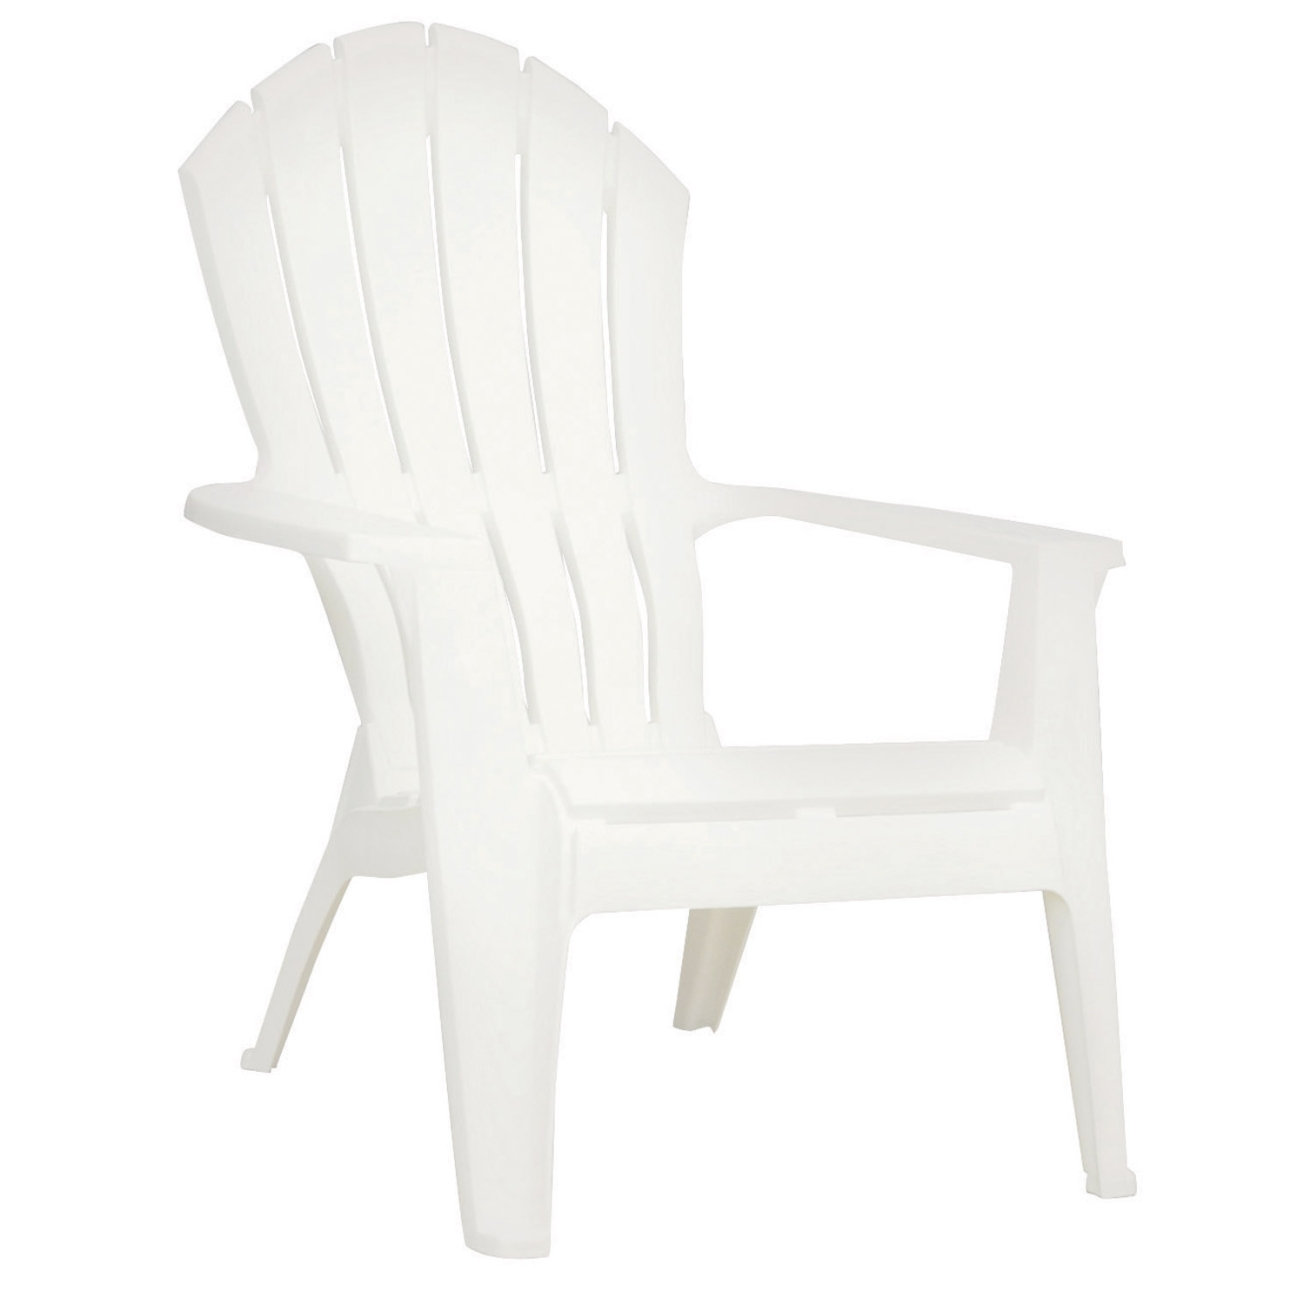 Adams Resin Adirondack Chairs Get The Best Plastic Adirondack Chairs Goodworksfurniture